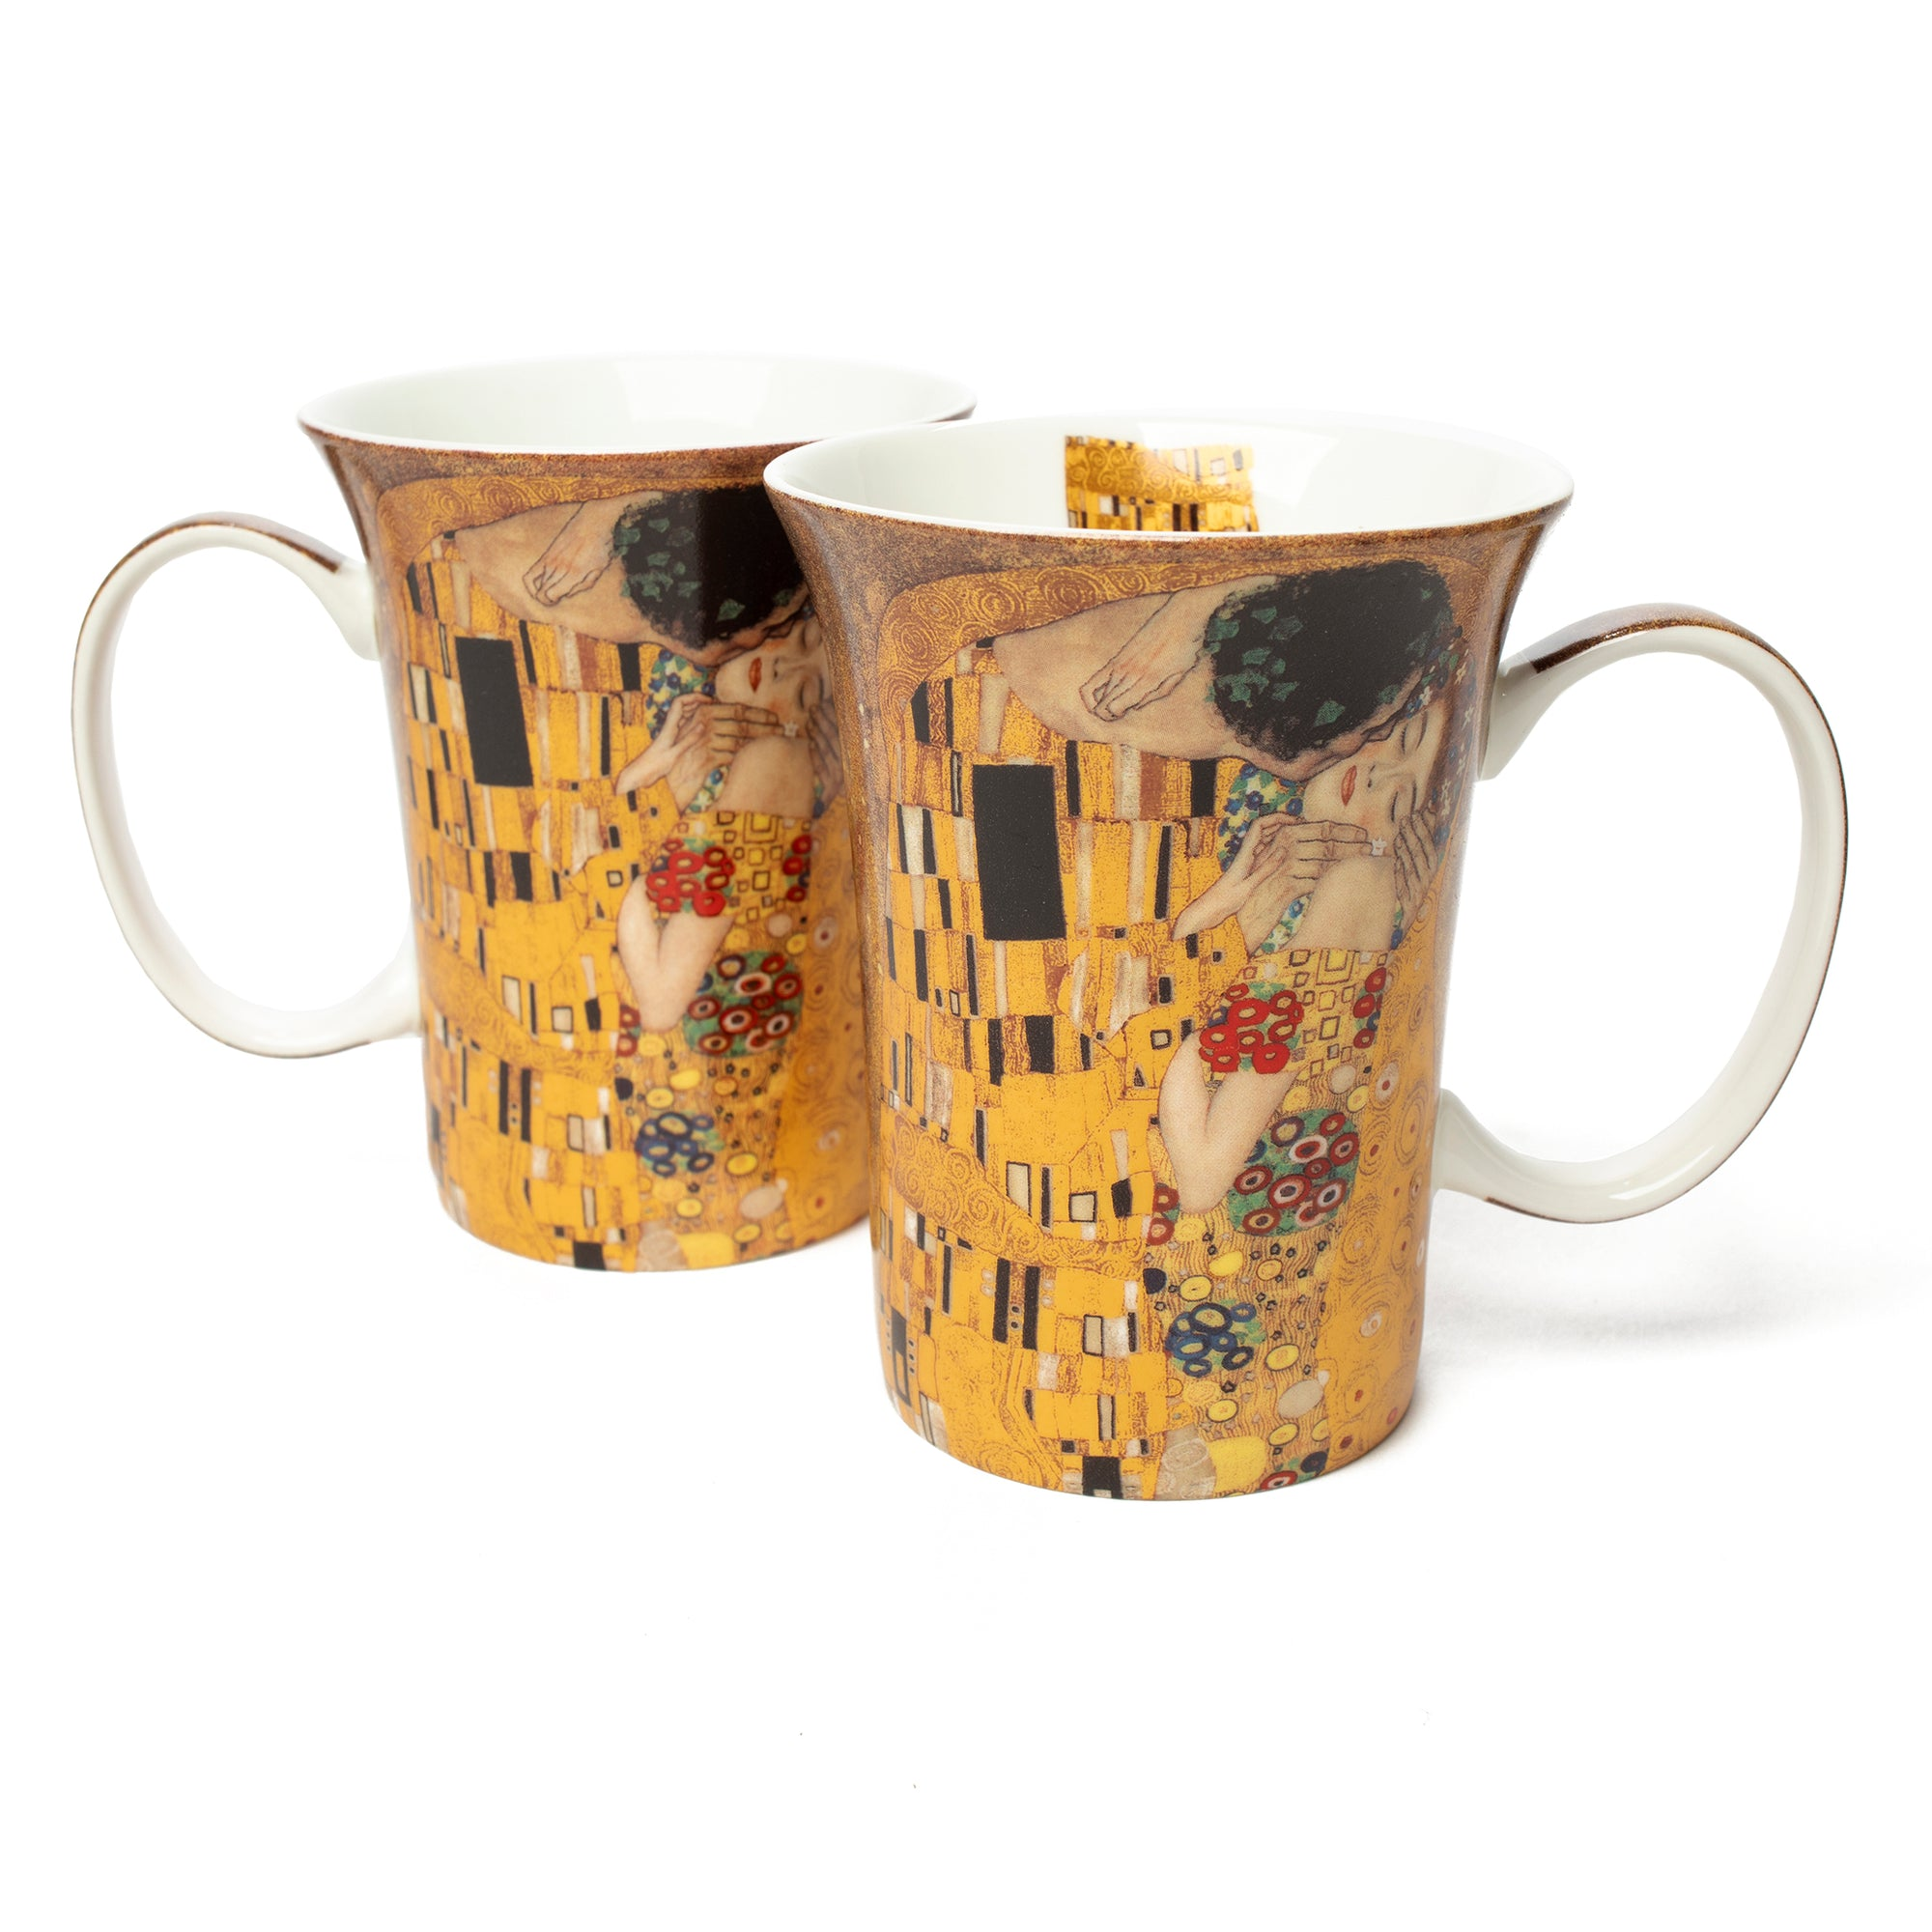 Pair of Fine Bone China Mugs featuring Klimt's The Kiss | Getty Store